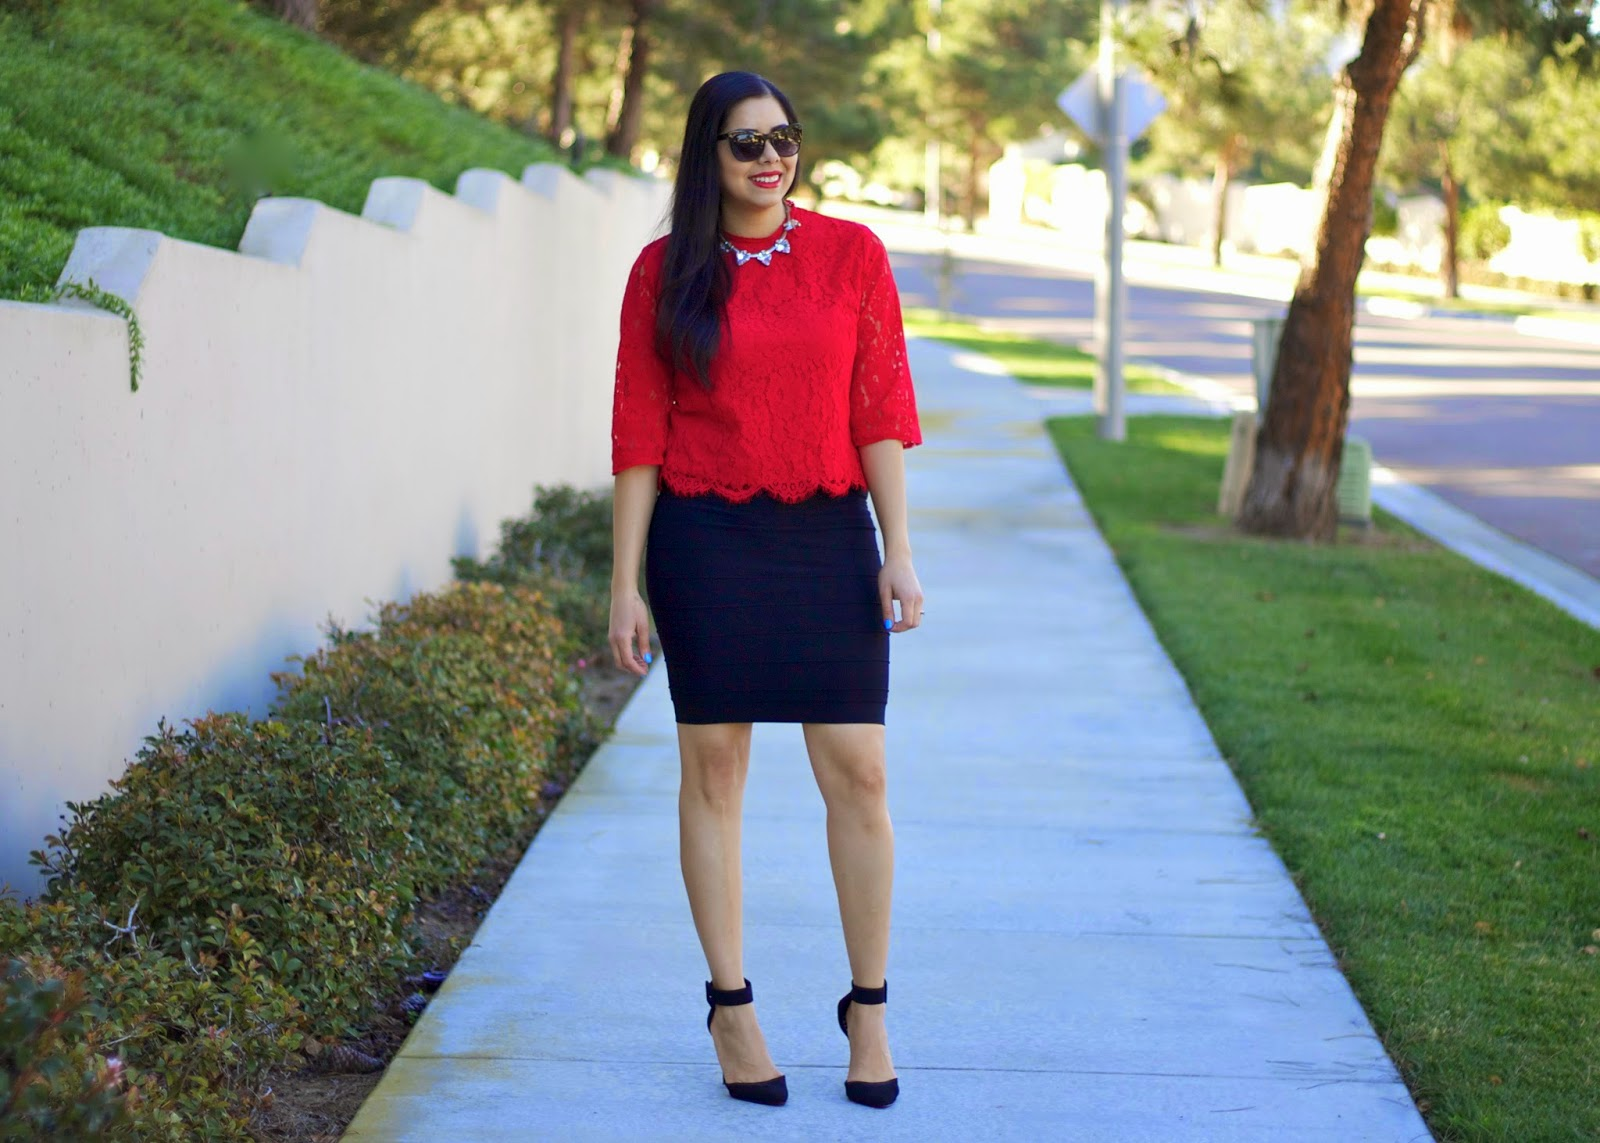 What to wear to Valentine's day dinner, vday dinner outfit, dinner in San Diego for vday, vday 2015 outfit, romantic outfit